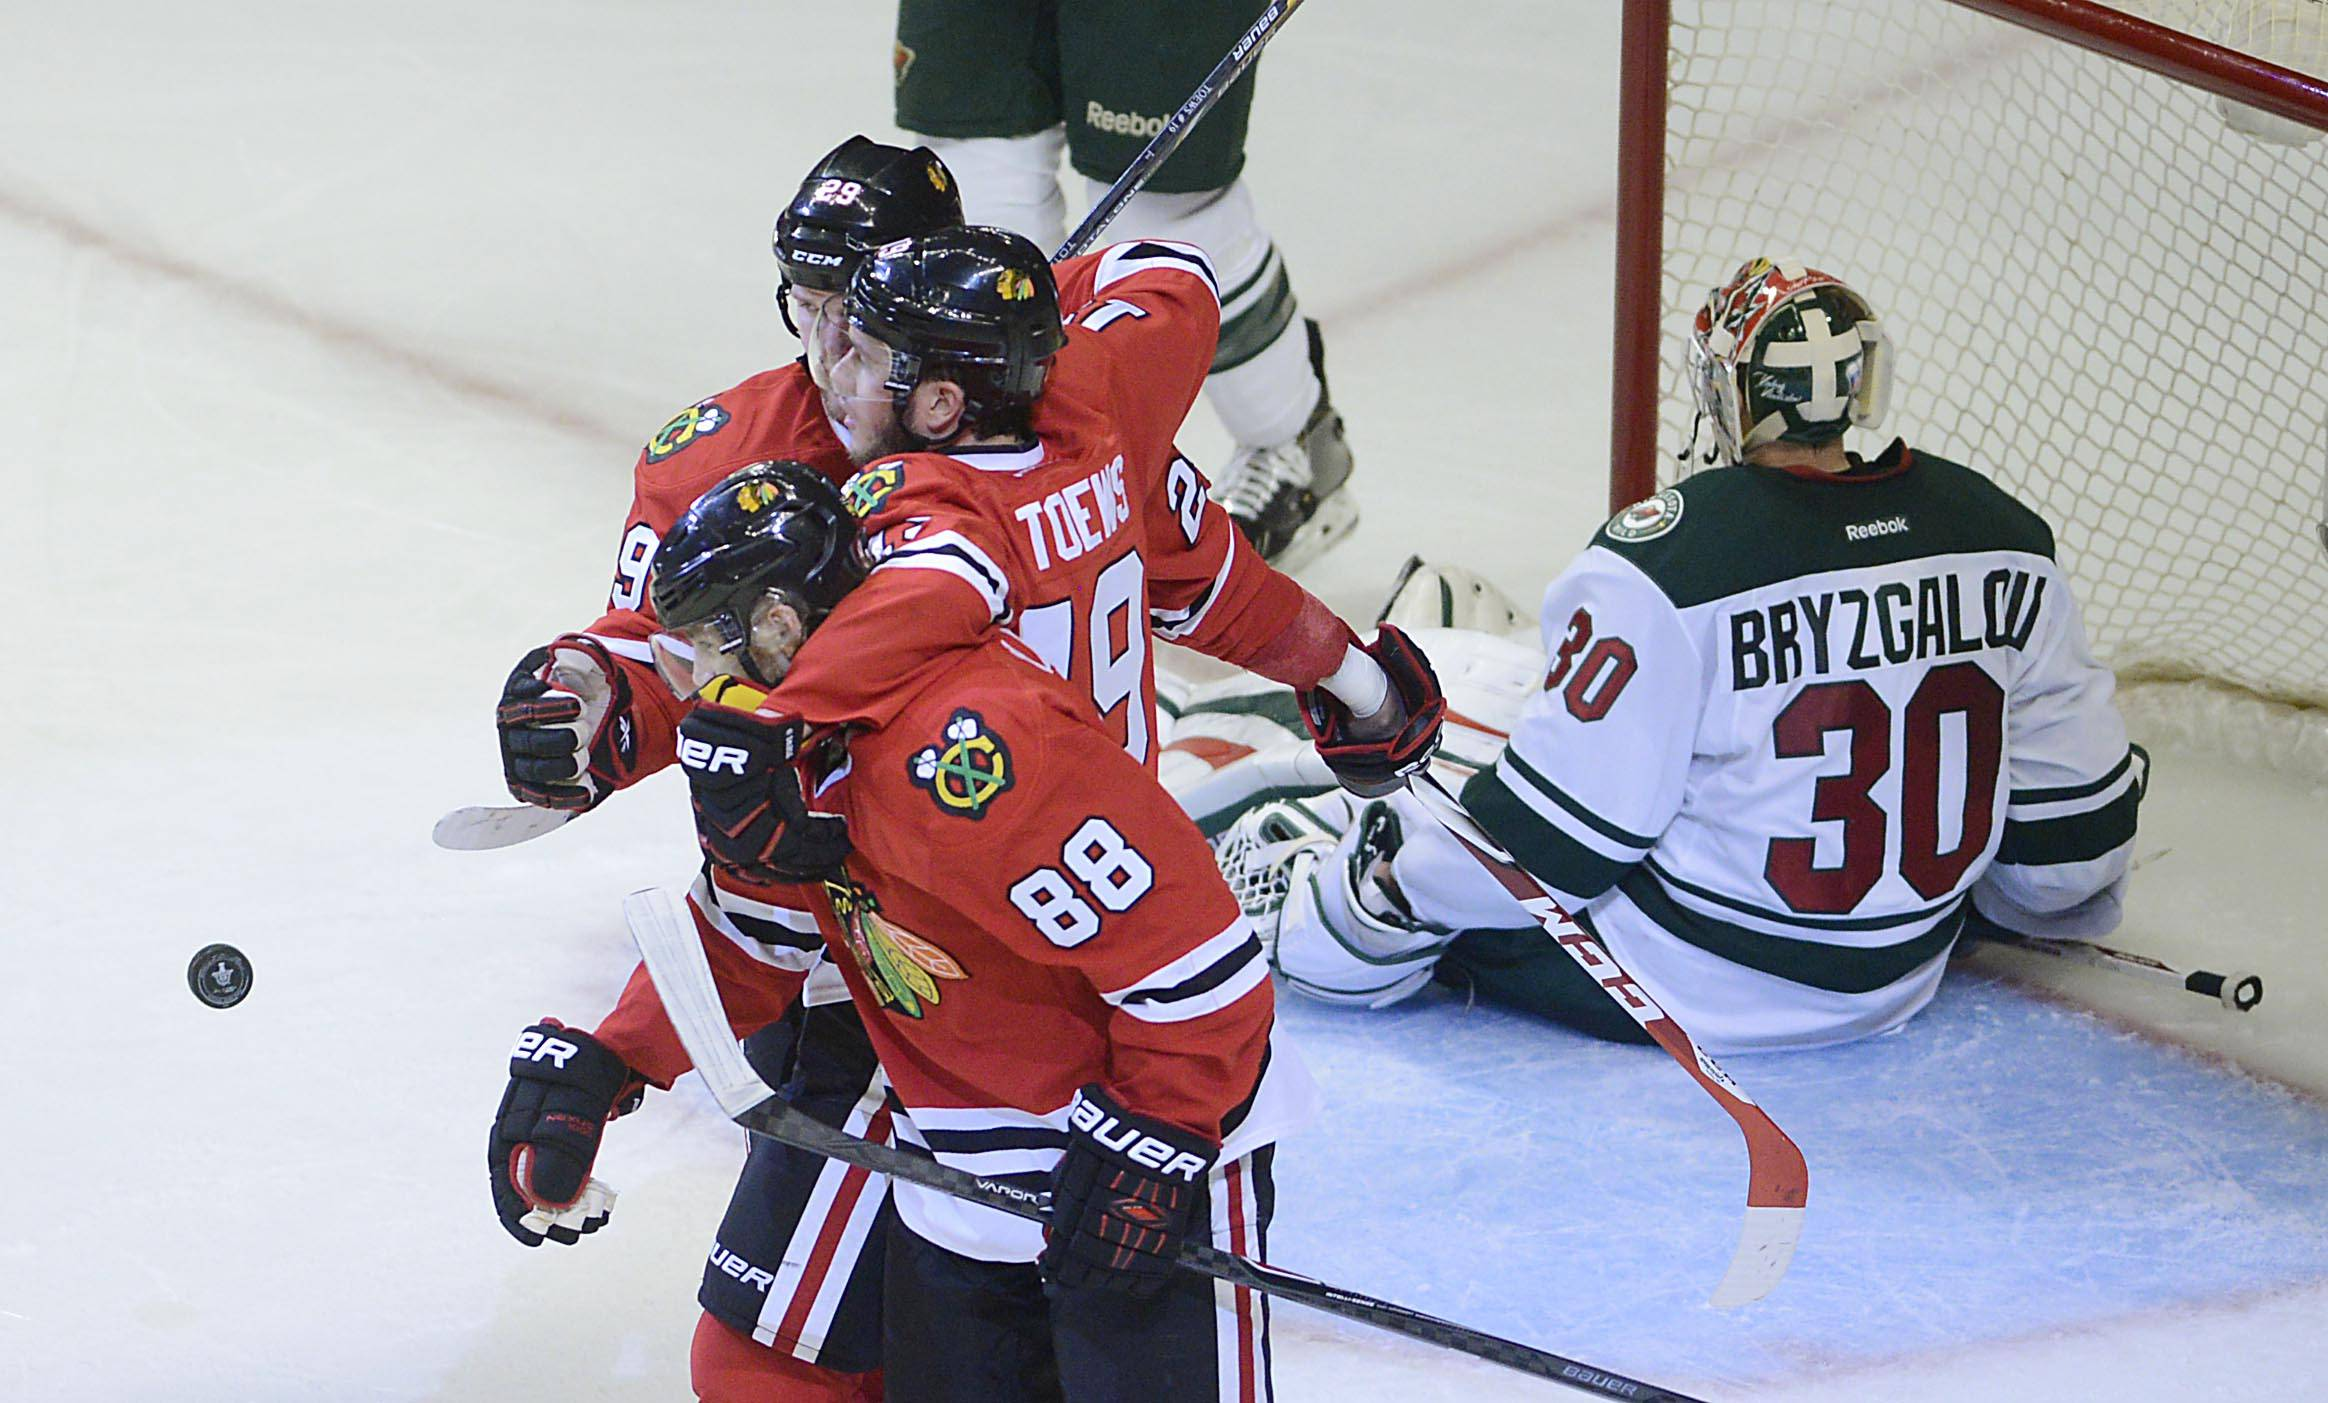 \Chicago Blackhawks forward Bryan Bickell is flanked by teammates Jonathan Toews and Patrick Kane after his second period goal against Minnesota Wild goalie Ilya Bryzgalov in the second period.